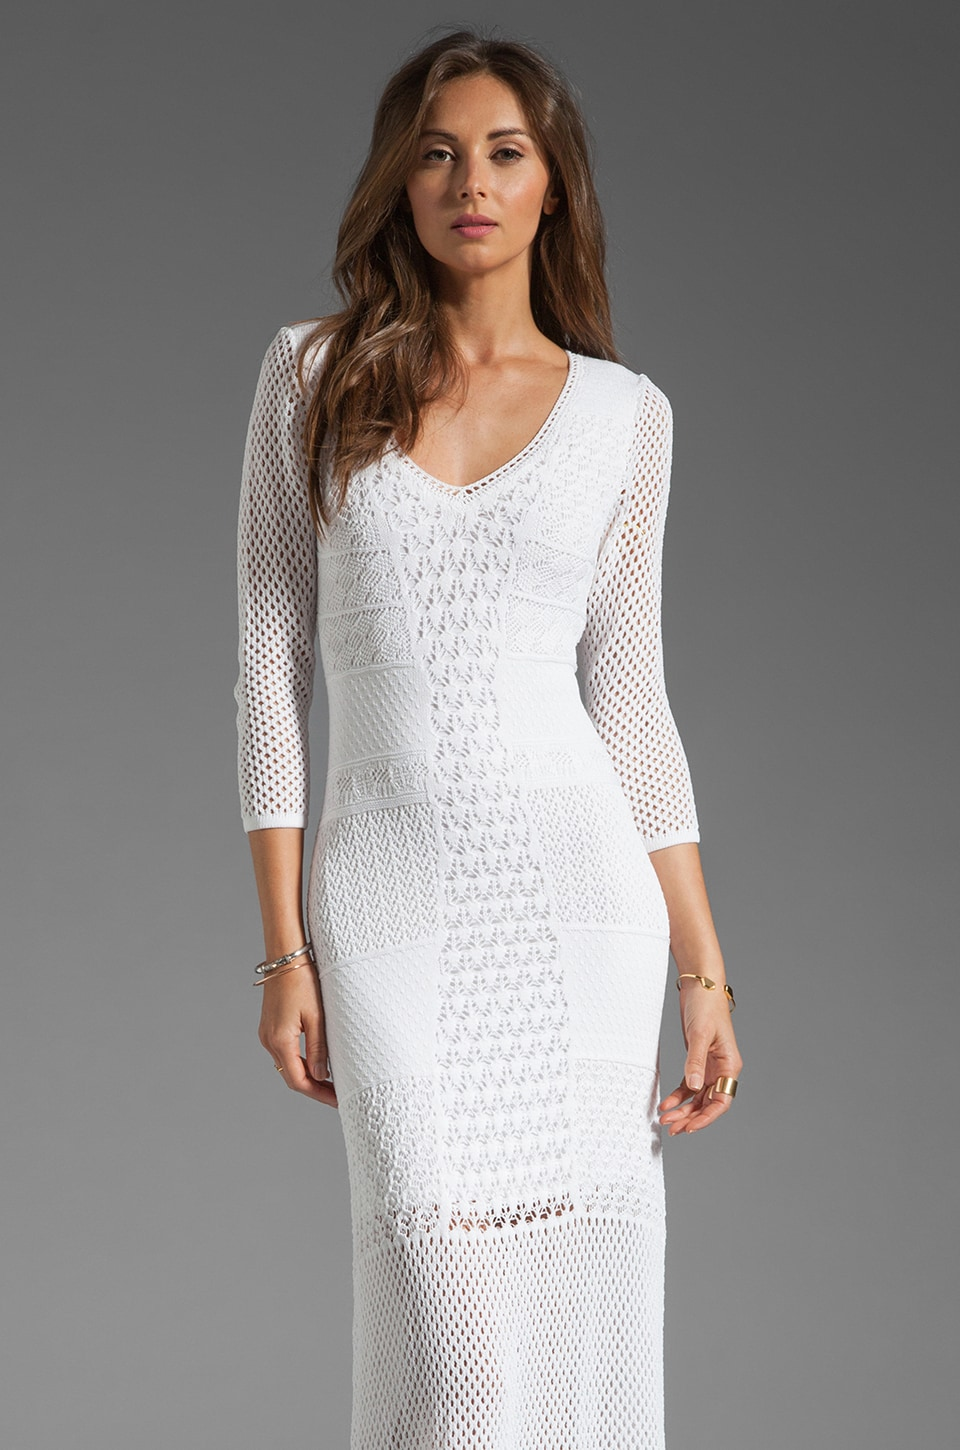 Catherine Malandrino Crochet Maxi Dress in White